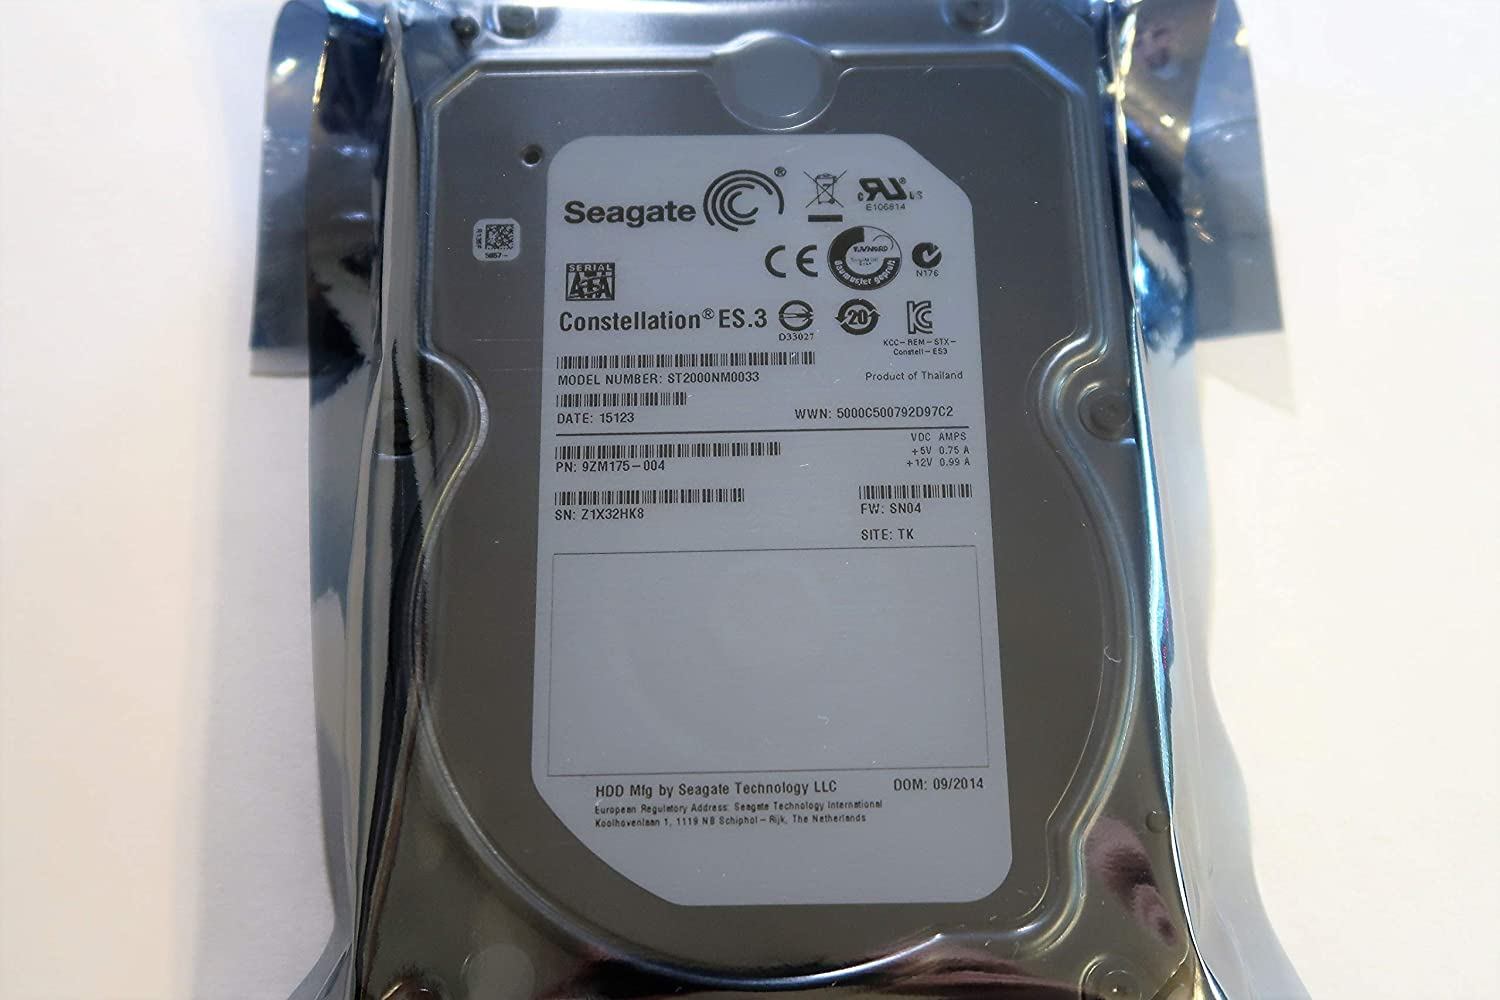 SEAGATE 9ZM175-003 Details about Seagate ES.3 ST2000NM0033 2TB 128MB SATA 6.0GB//S 3.5 Renewed